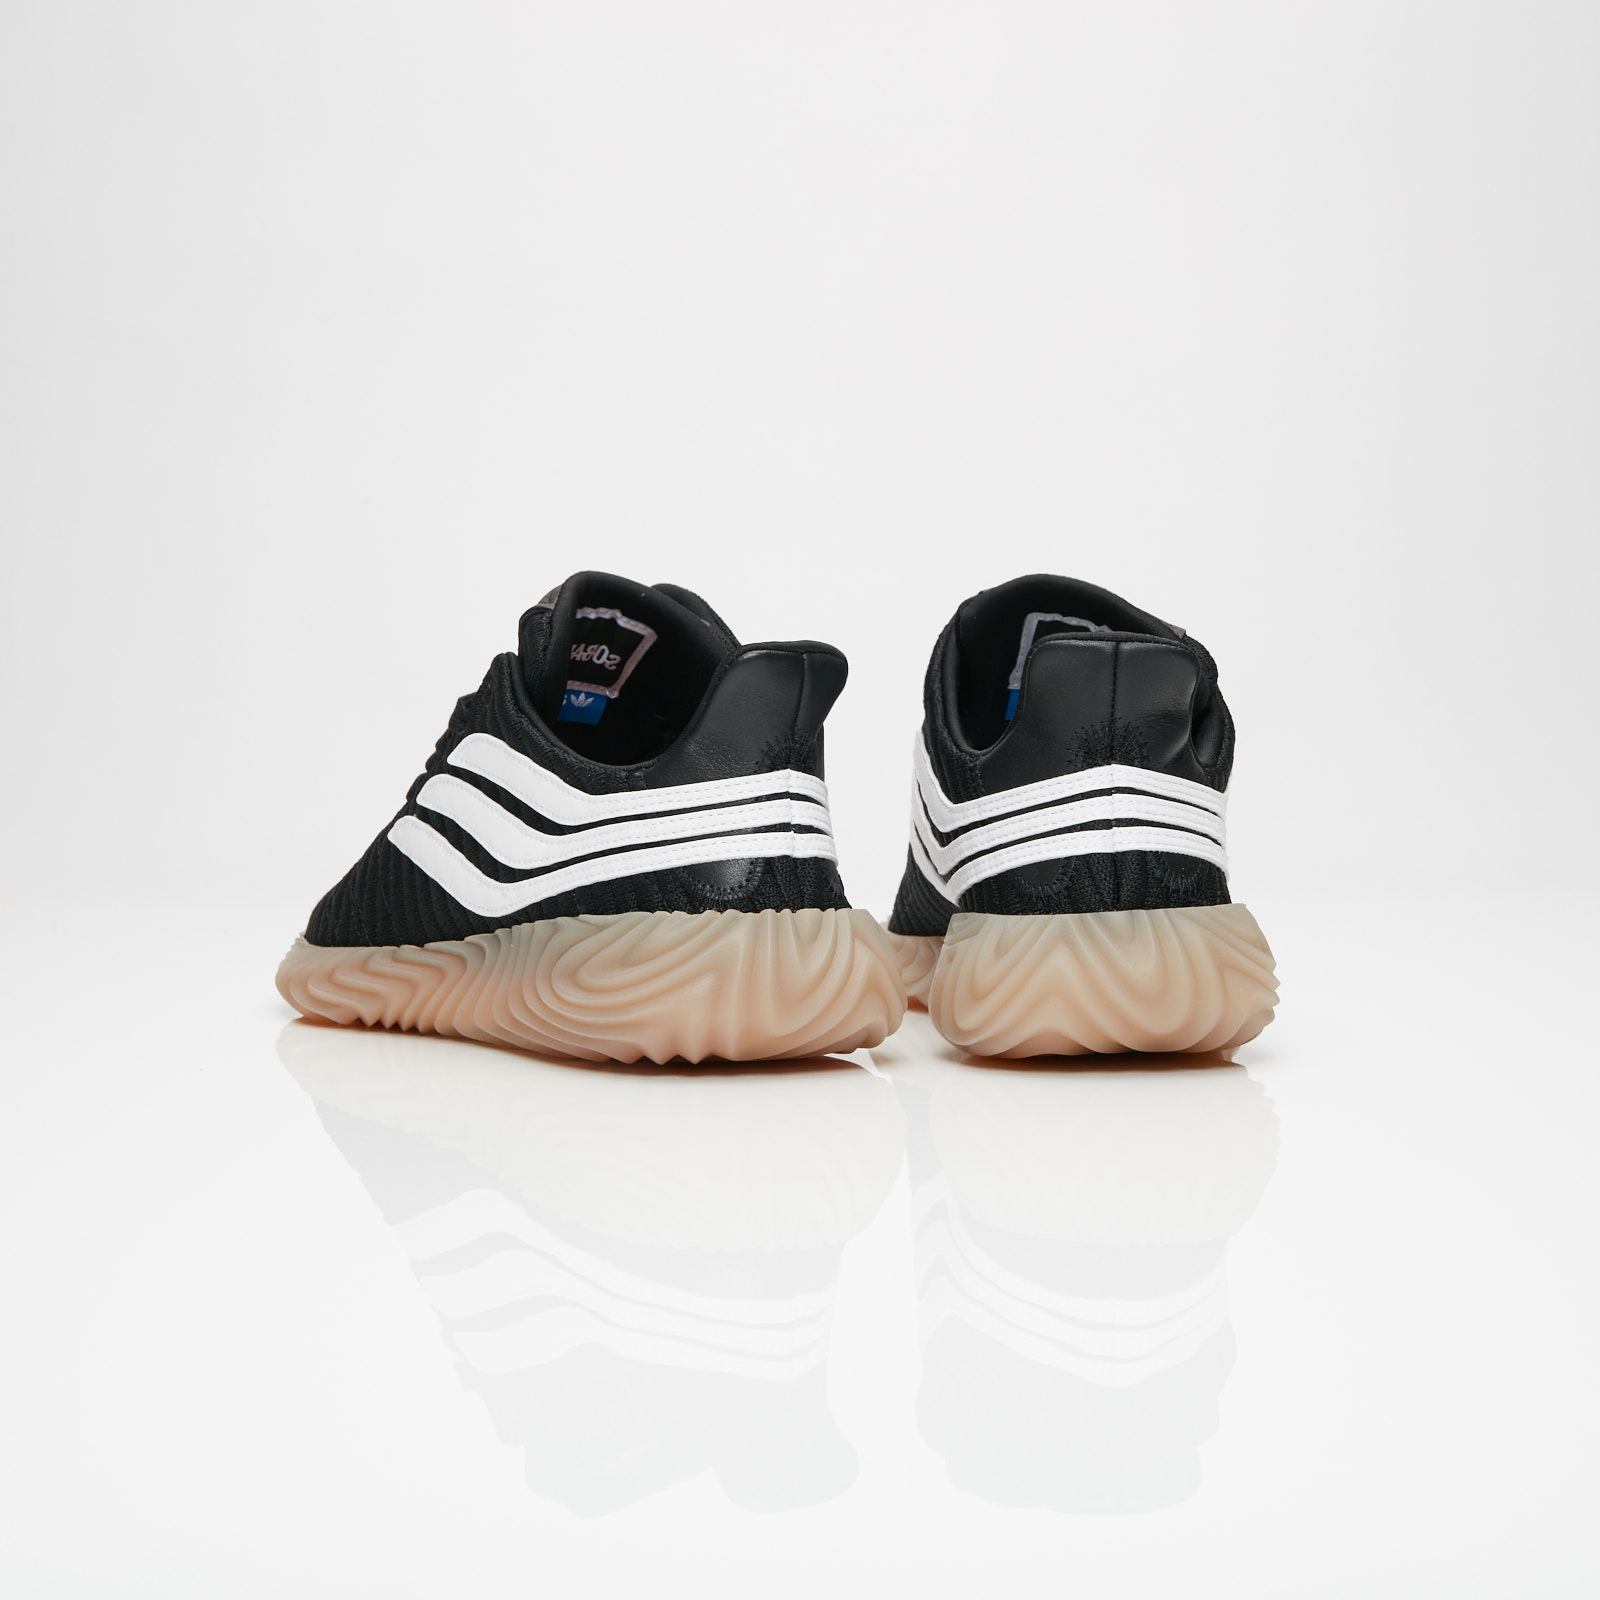 new concept 6cbc4 98c35 adidas Sobakov - Aq1135 - Sneakersnstuff   sneakers   streetwear online  since 1999